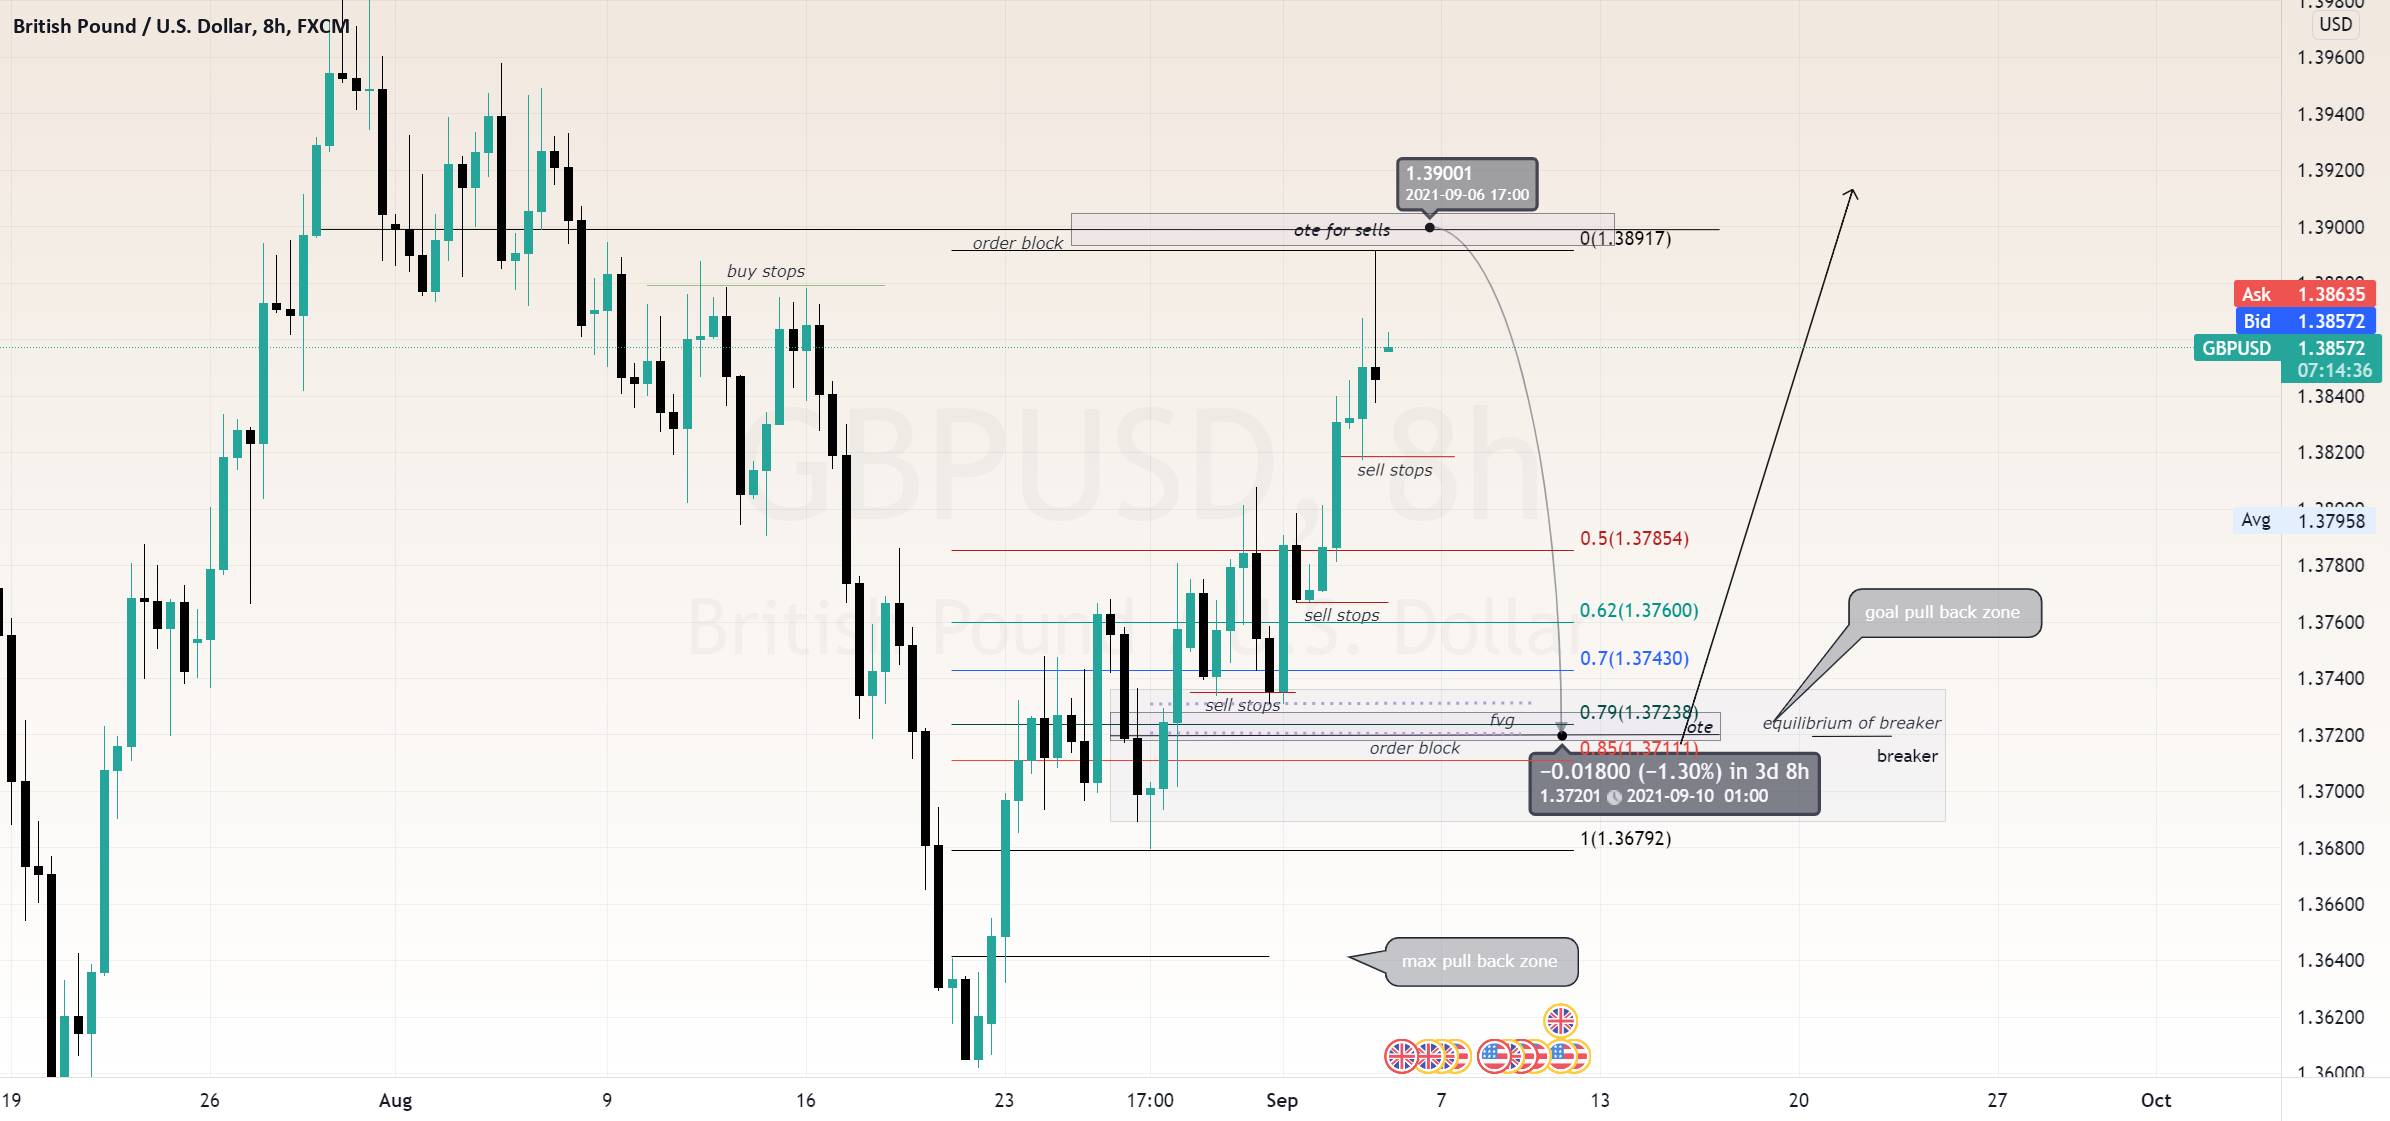 GBPUSD-Weekly Outlook for FX:GBPUSD by stimichele